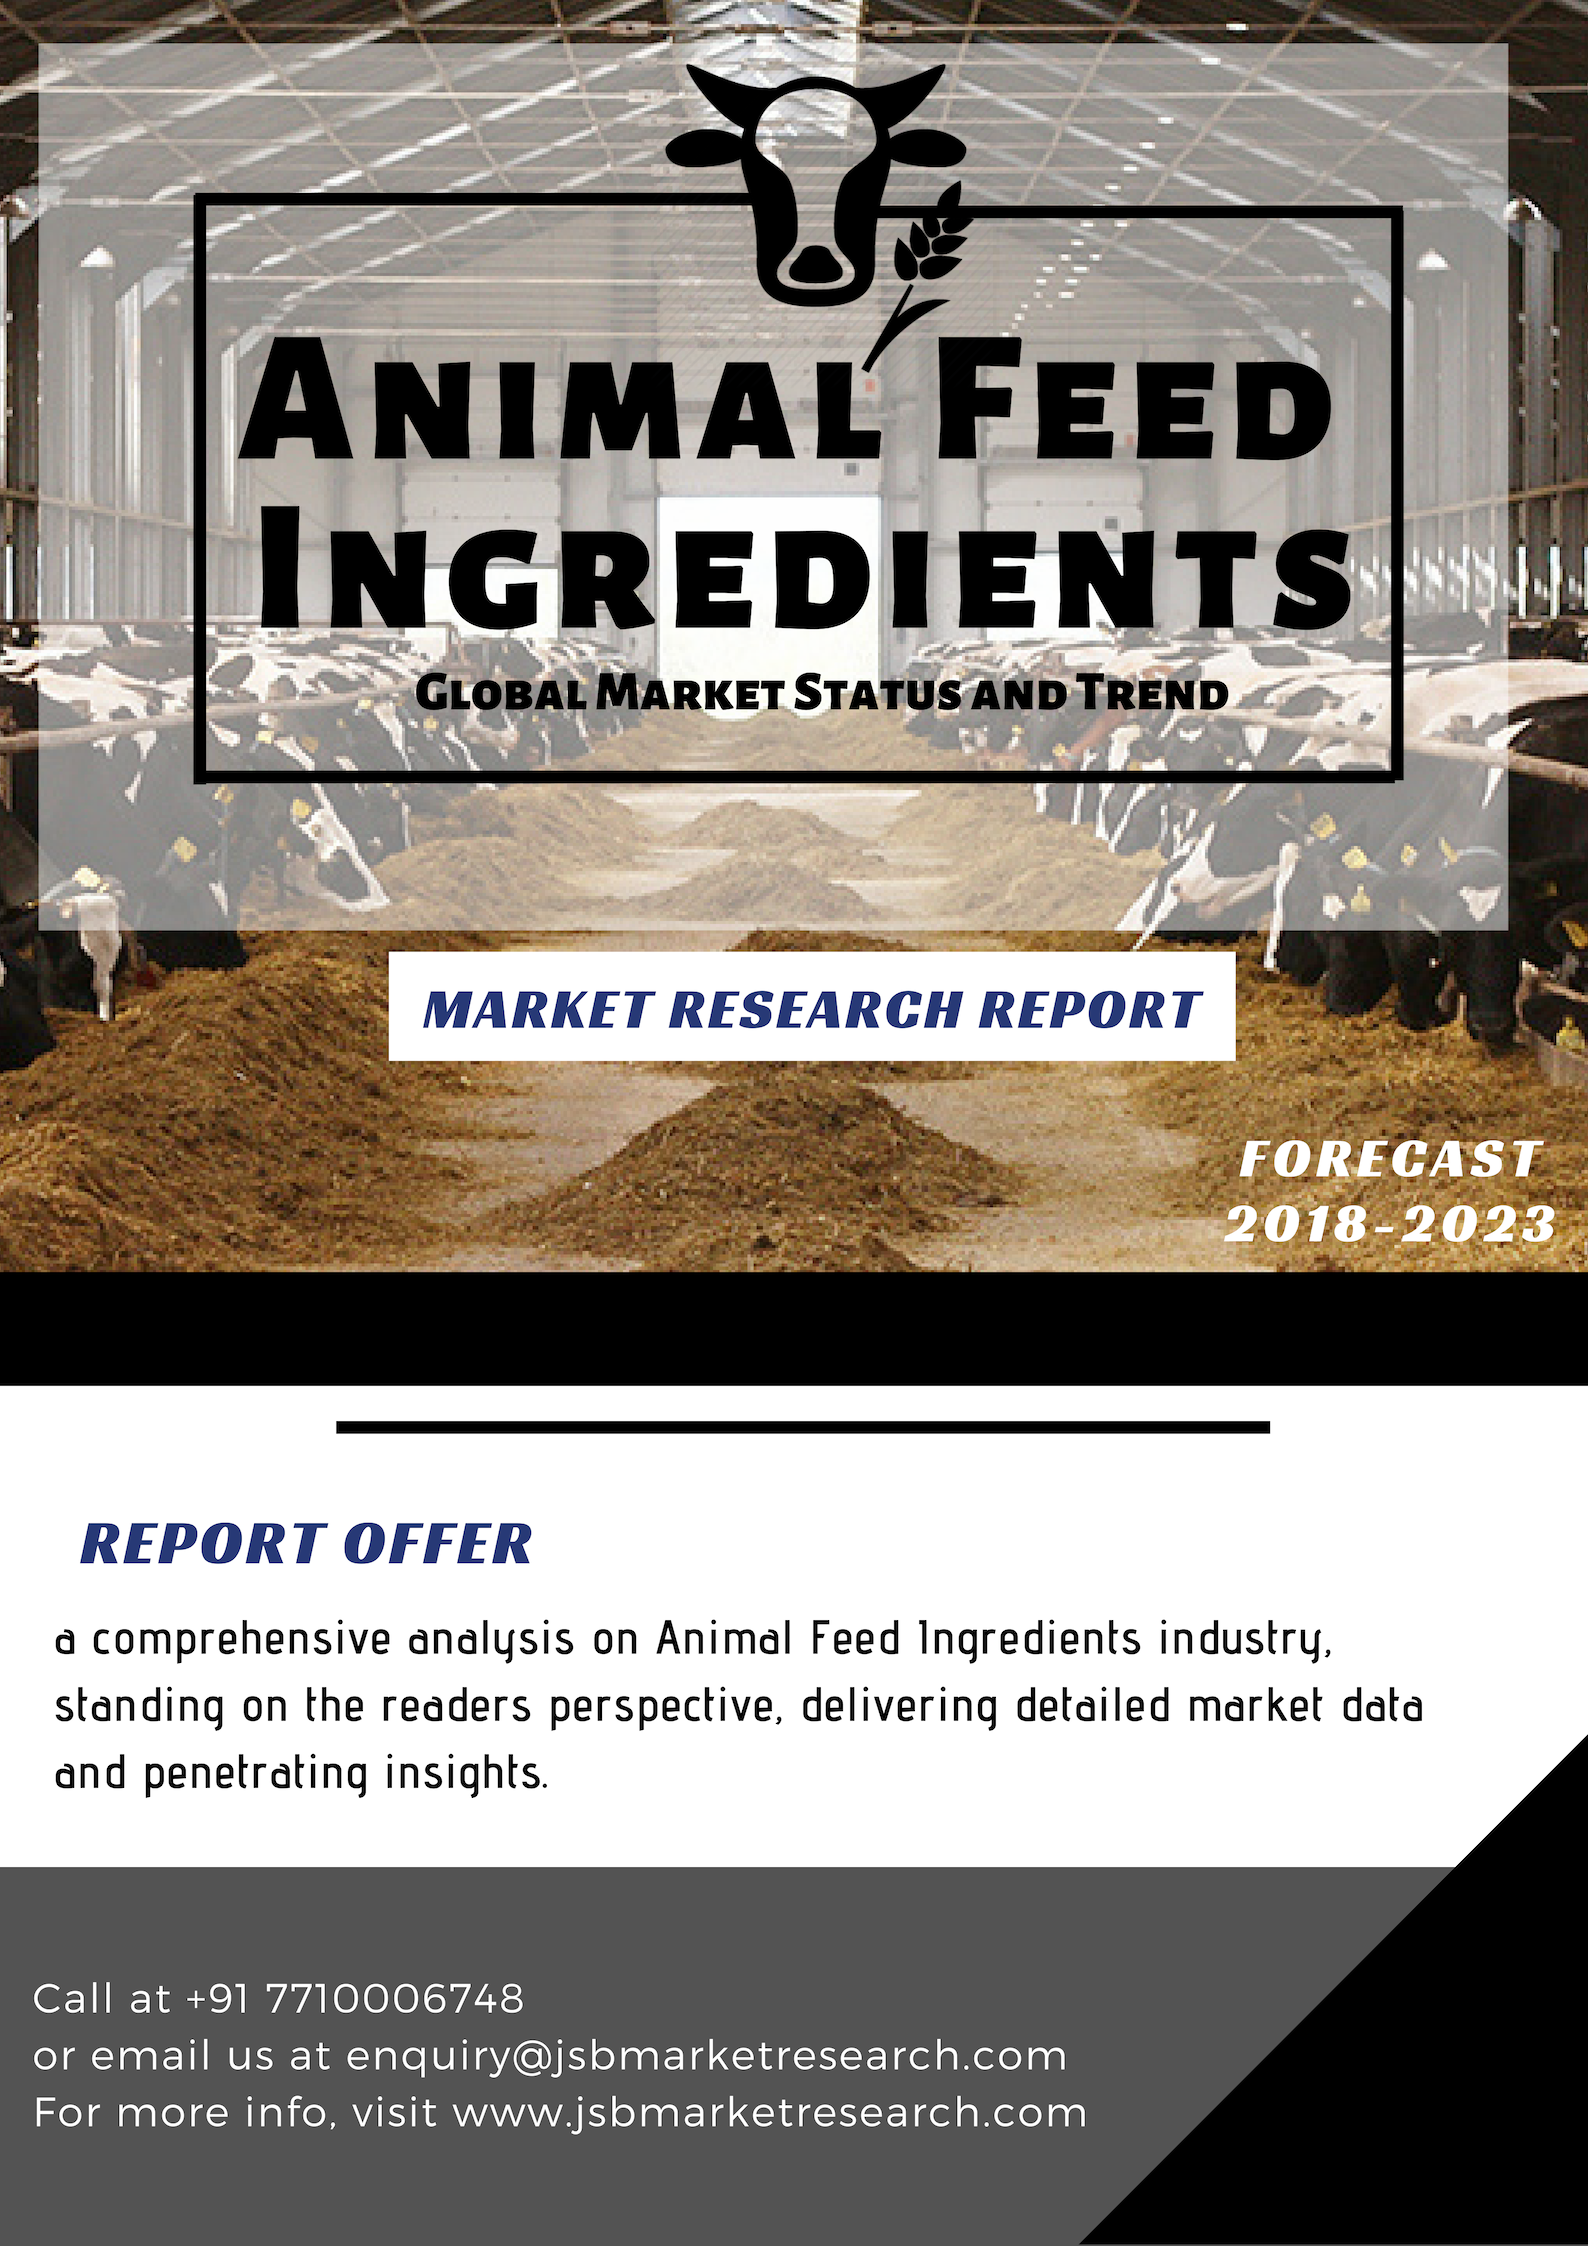 The current Animal feed ingredients market has a variety of